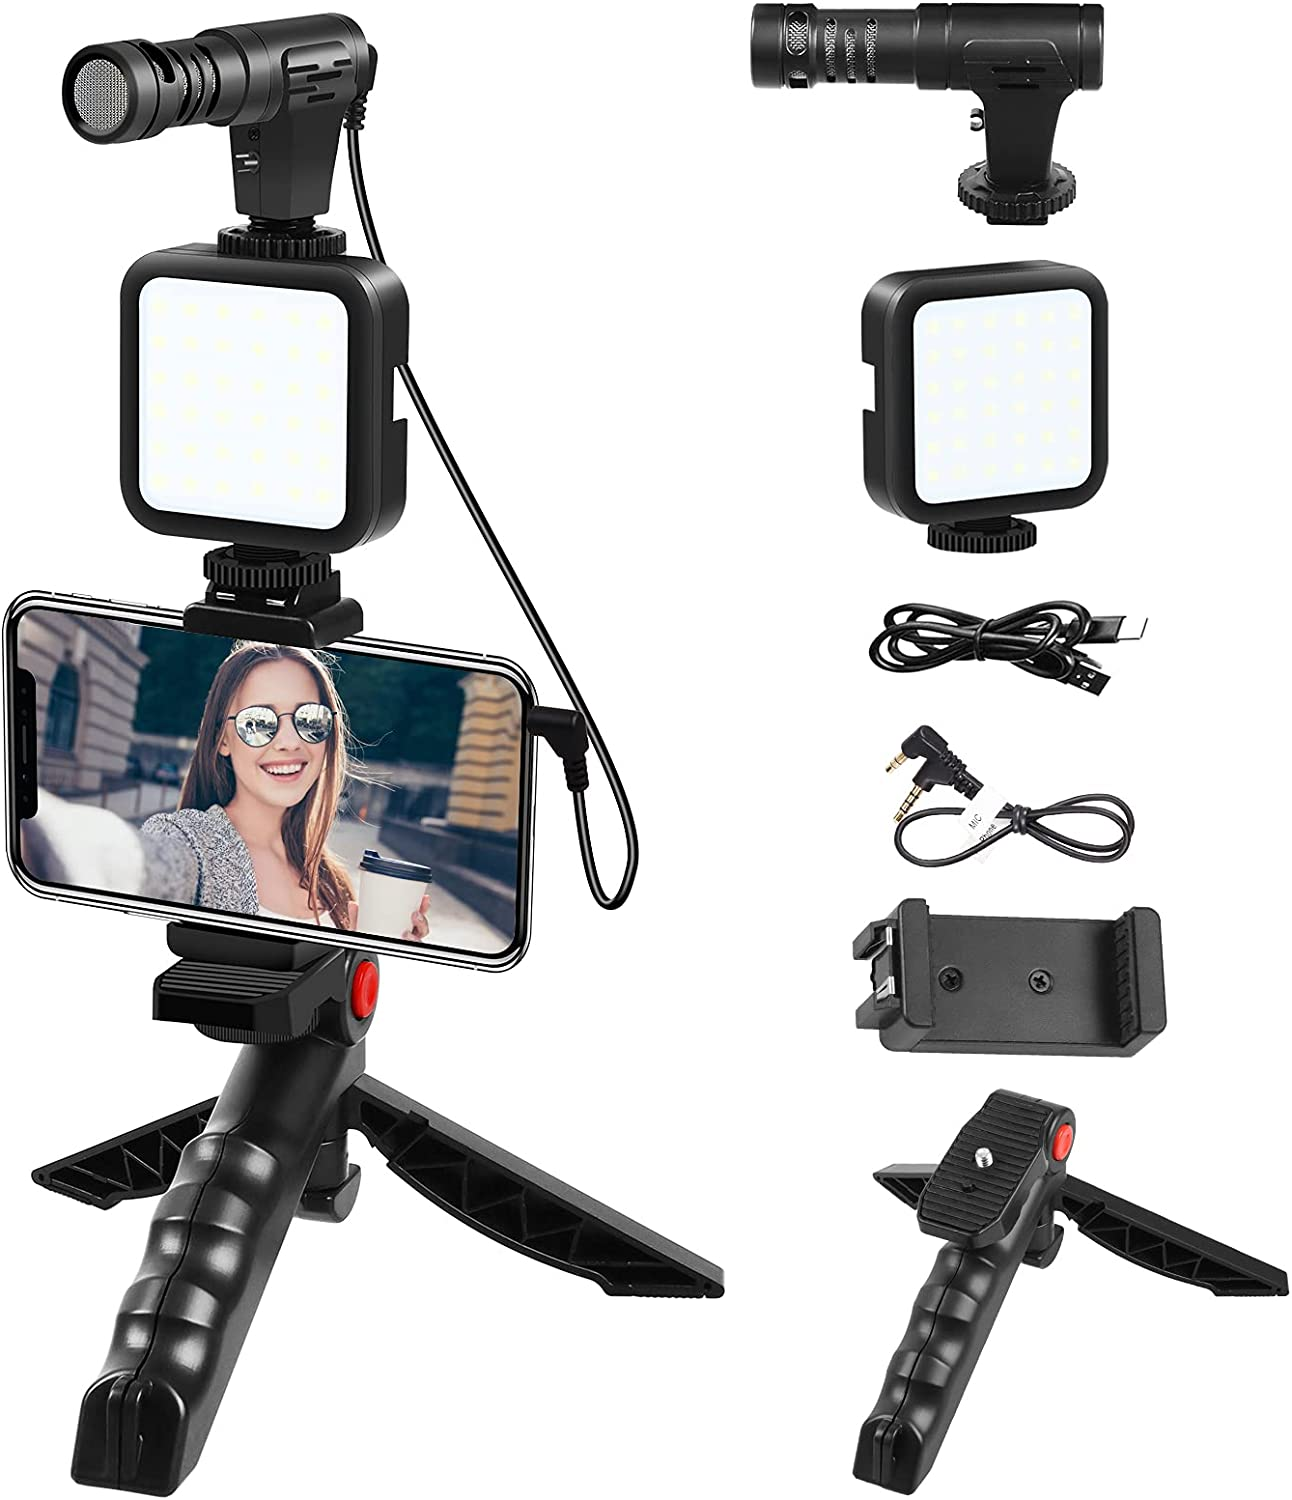 Microphone Omaha Mall for iPhone Smartphone Special price Video Kit with L LED